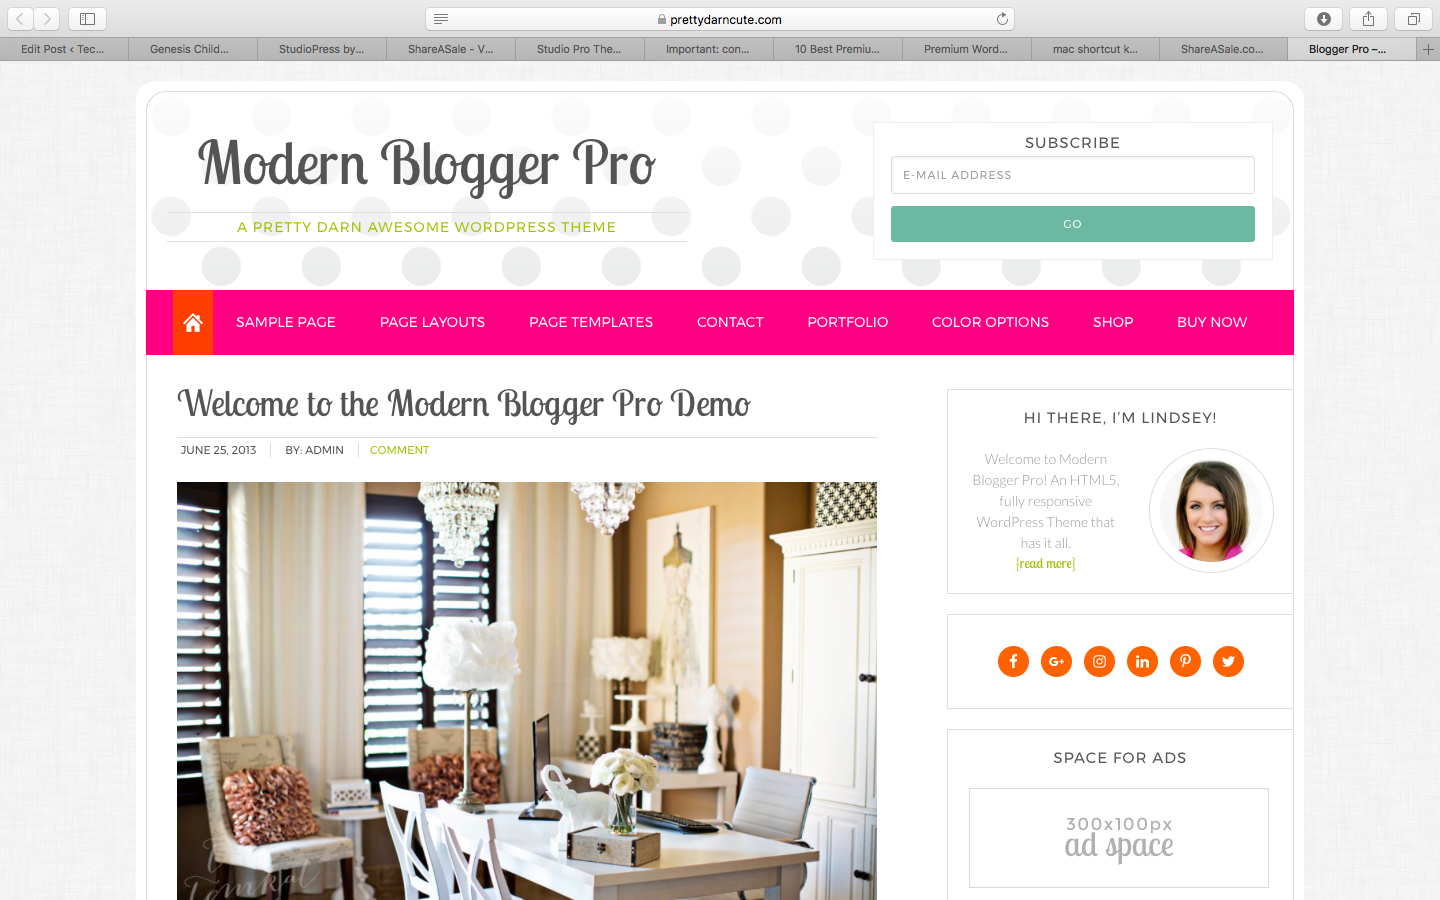 Modern Blogger Pro Genesis Child Theme